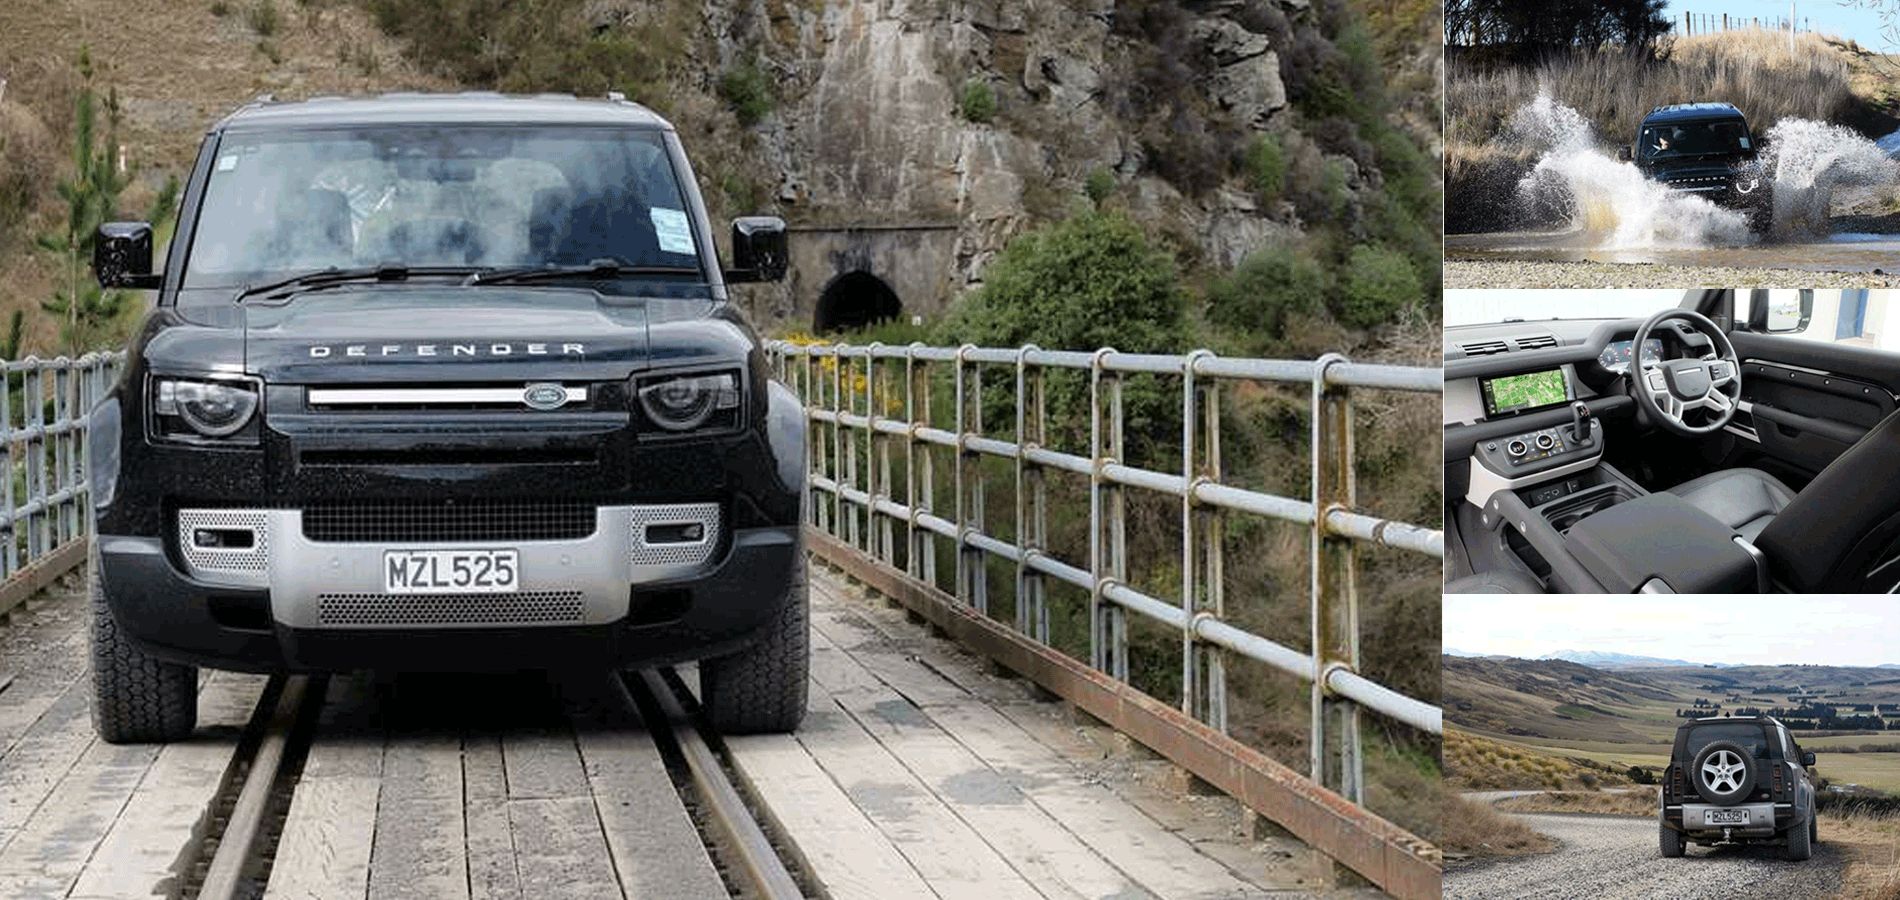 Dignified, Smooth, Exceptional - the all-new Land Rover Defender